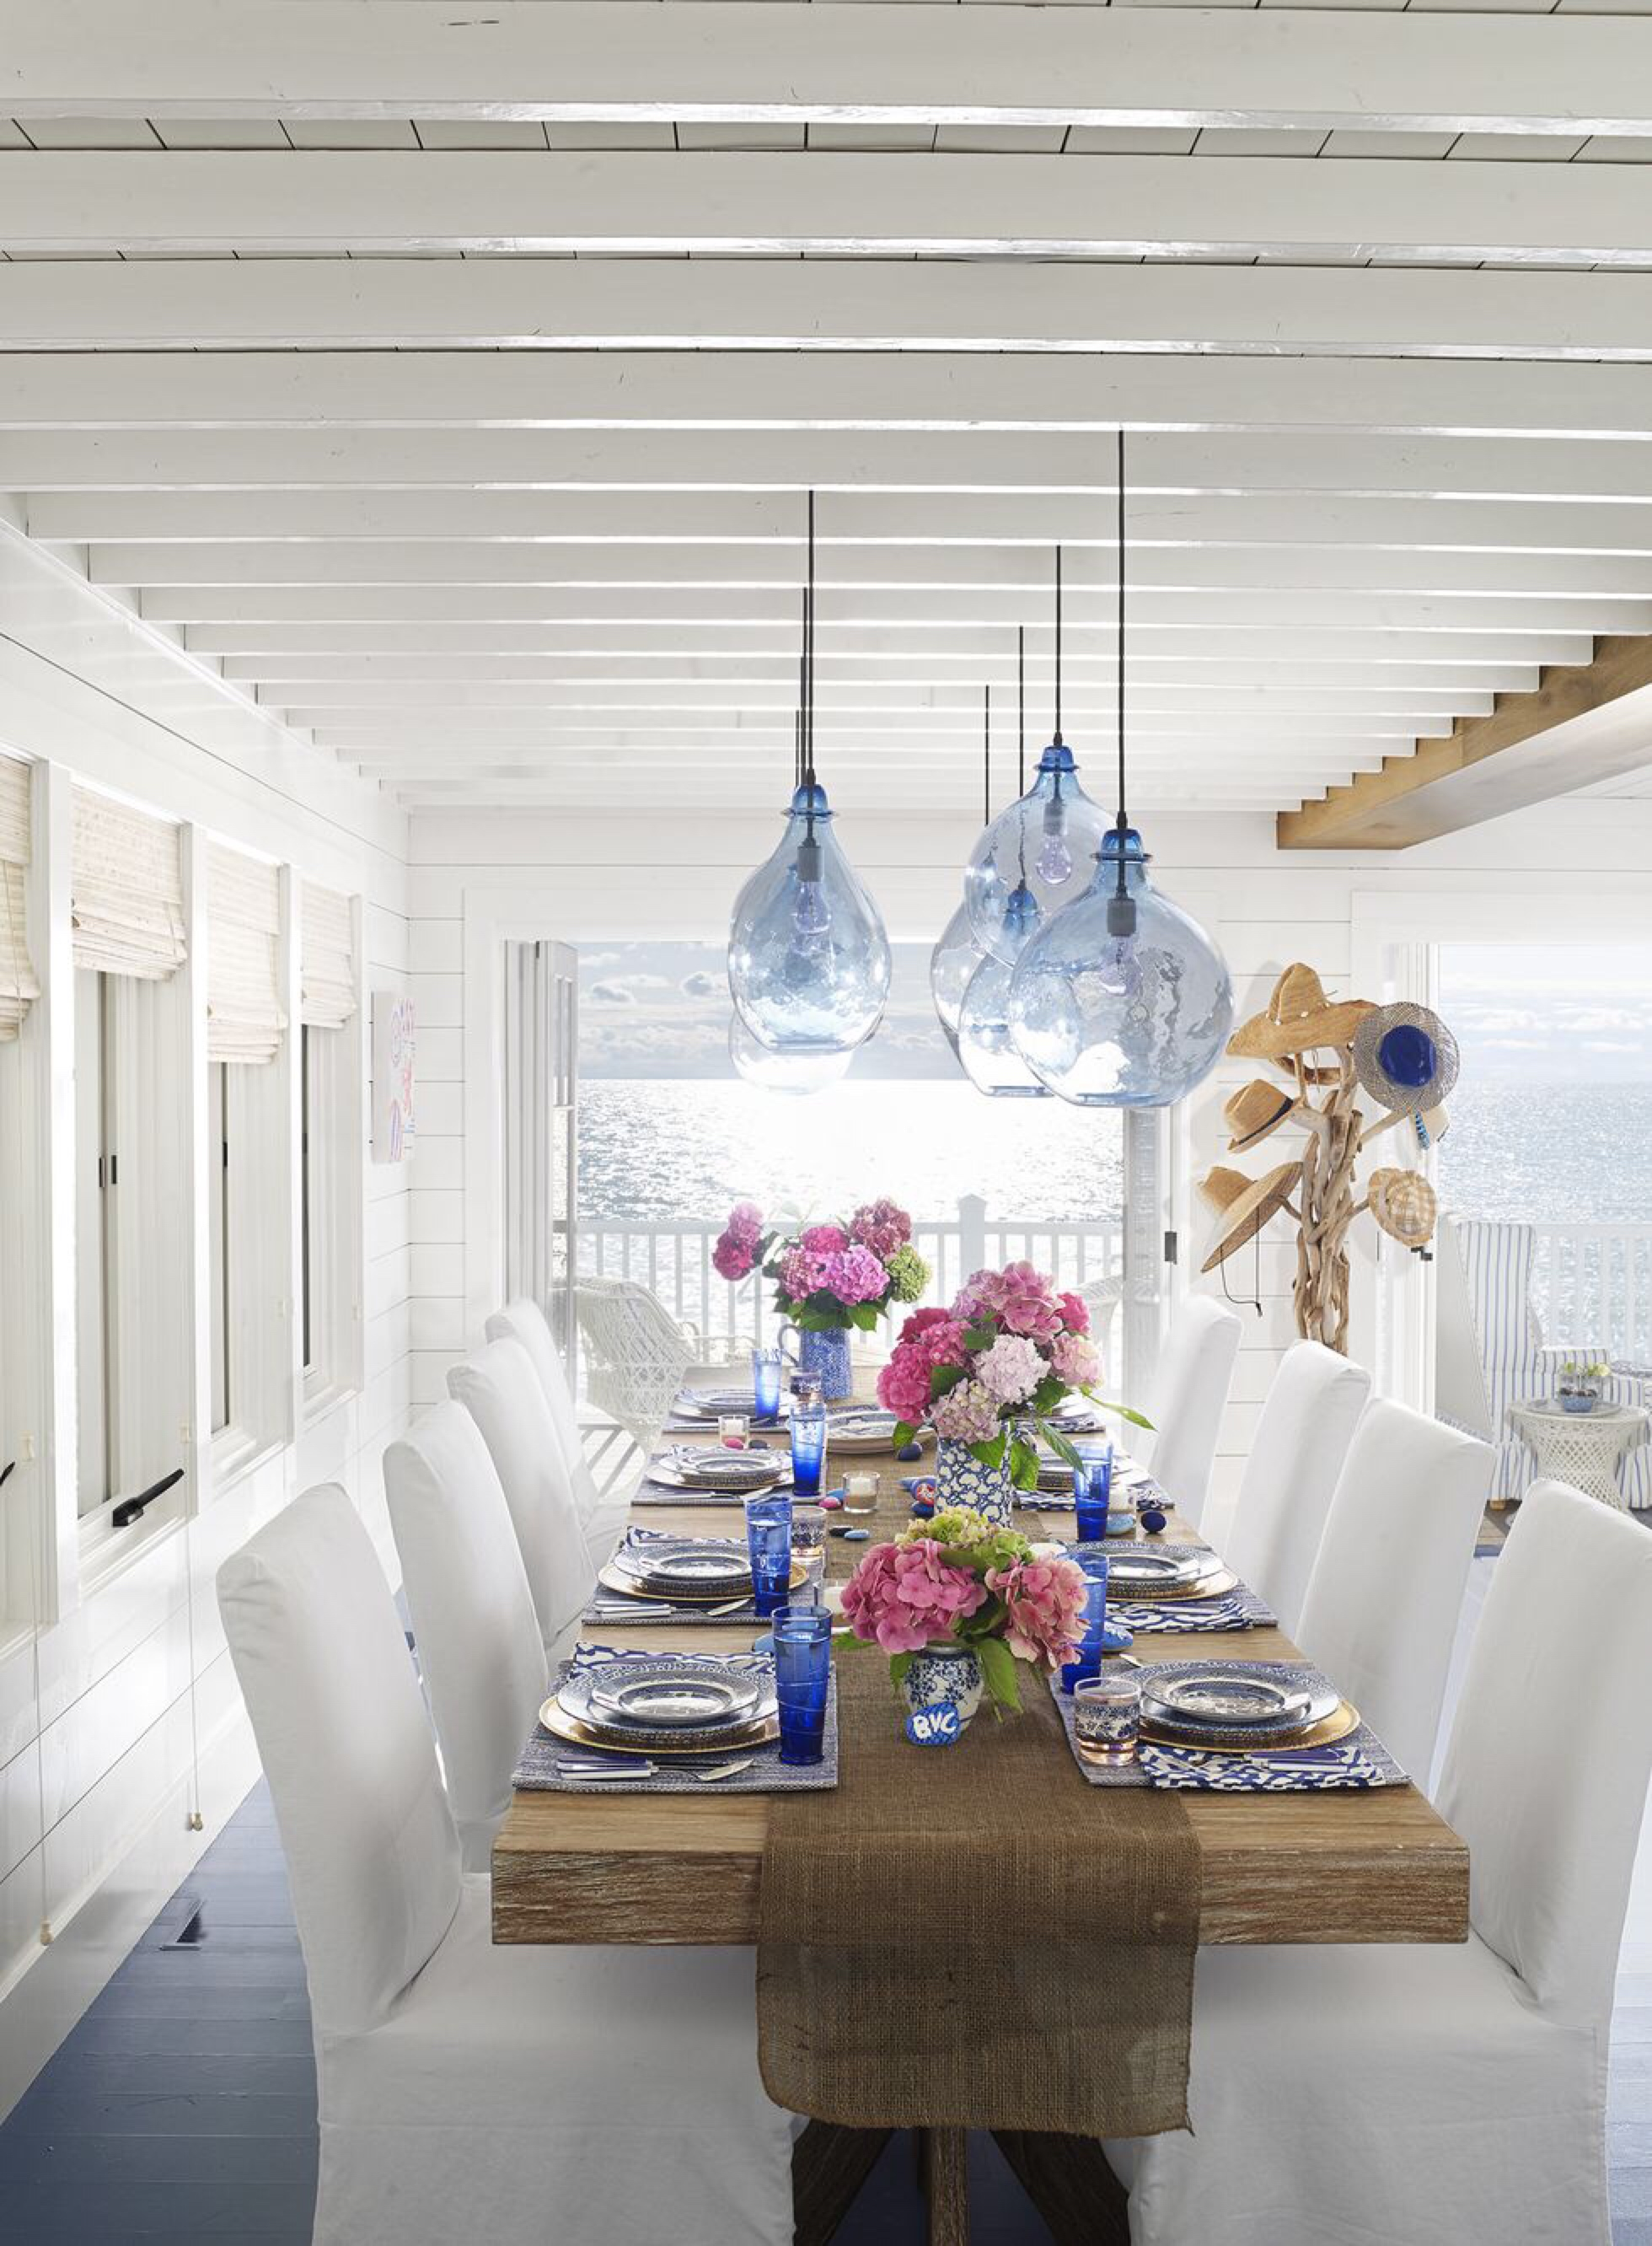 dinner_dining_table_dining_room_lights_Article_from_House_Beautiful_summer_home_in_Ludington_Michigan_decor_decoration_blue_white_beach_decor_interiors_and_more_vacations_980_1332.jpg